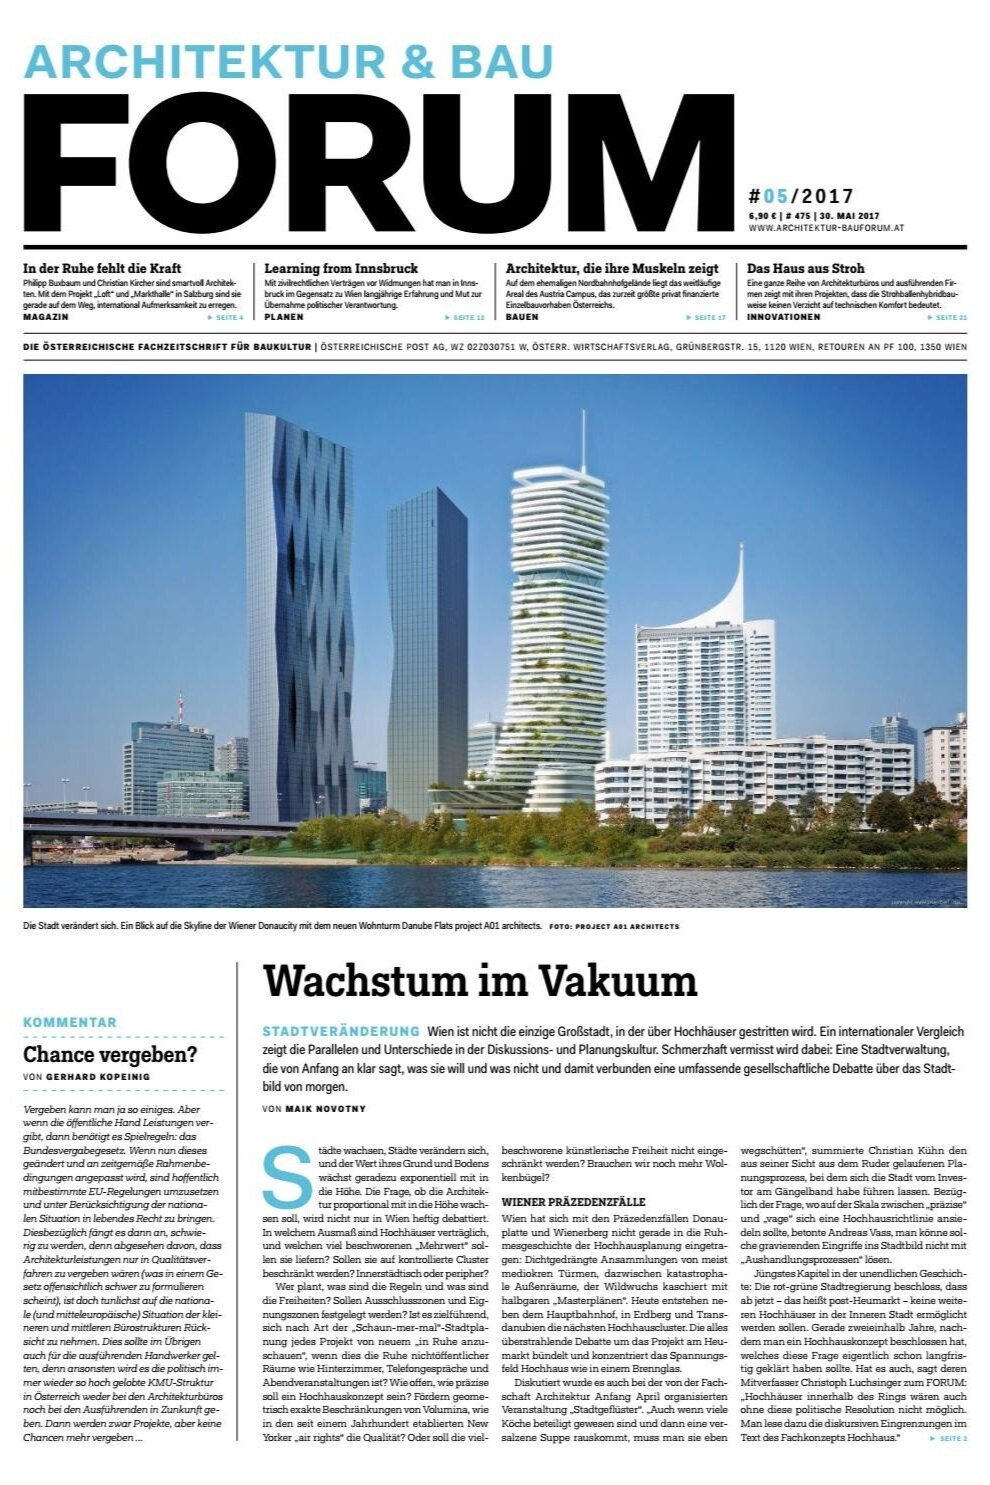 Growth in a vacuum - Coverstory in FORUM